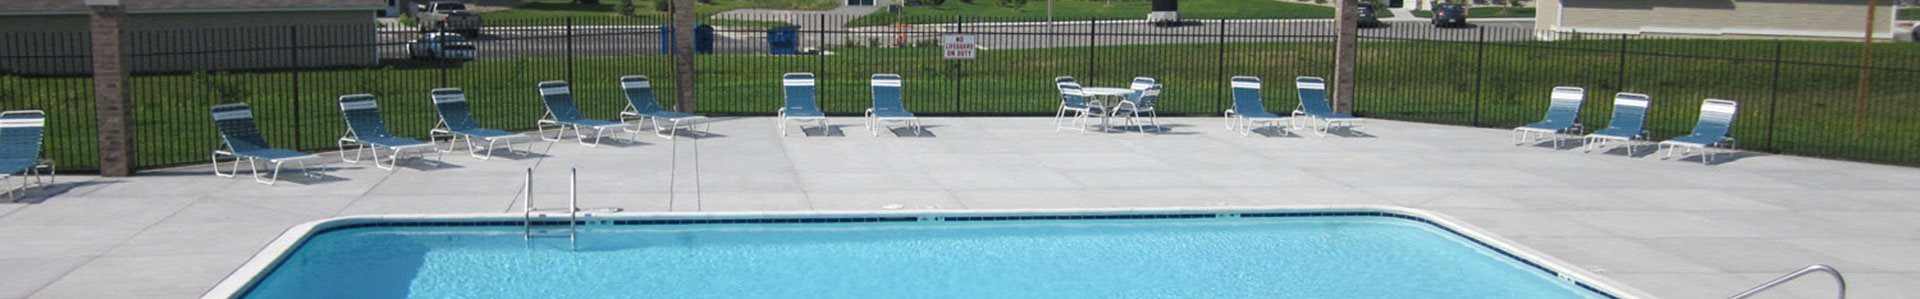 Poolside Sundeck with Chairs and Tables at Colonial Pointe at Fairview Apartments, Nebraska